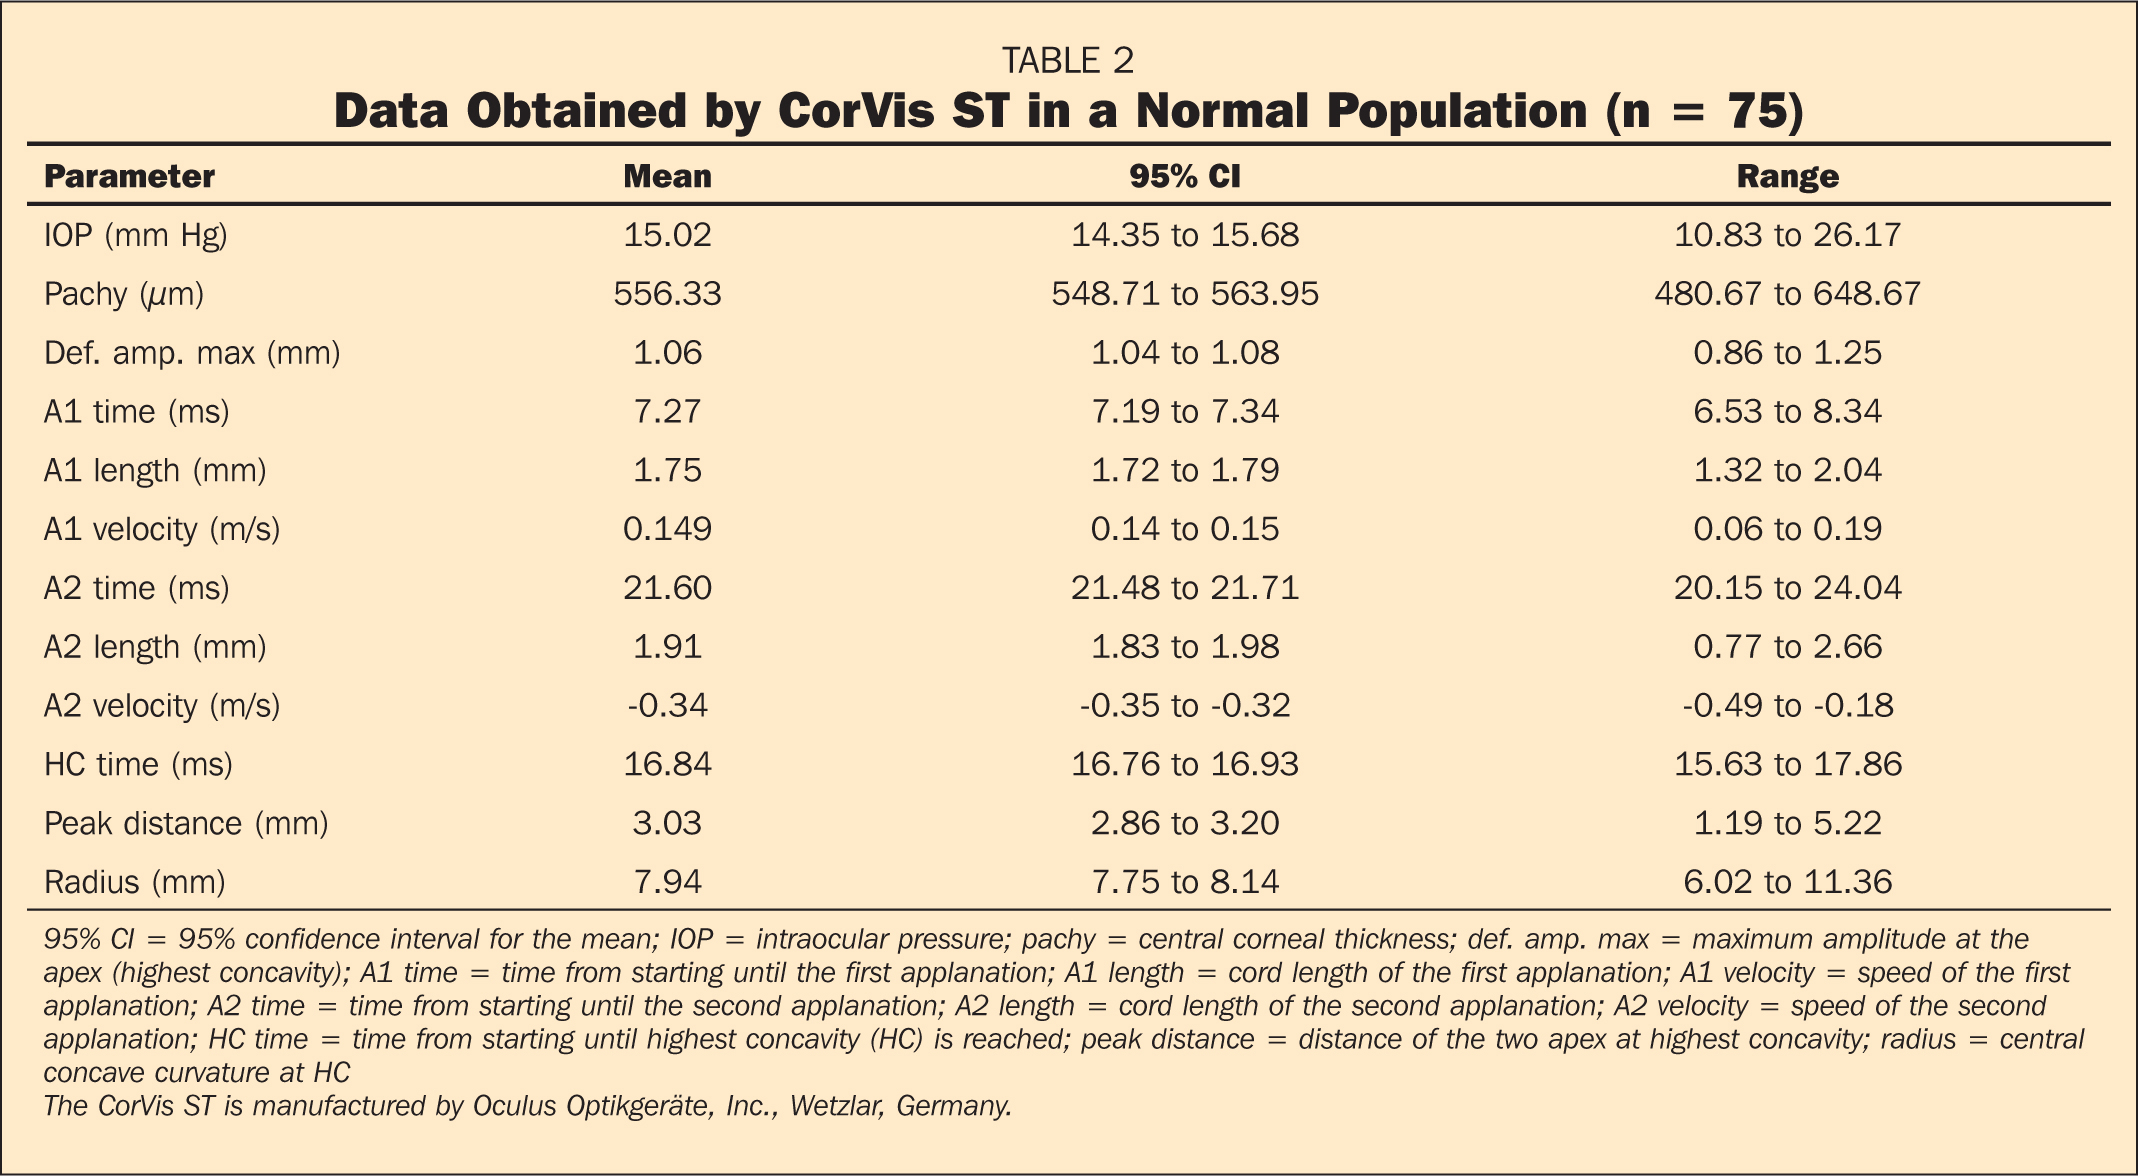 Data Obtained by CorVis ST in a Normal Population (n = 75)